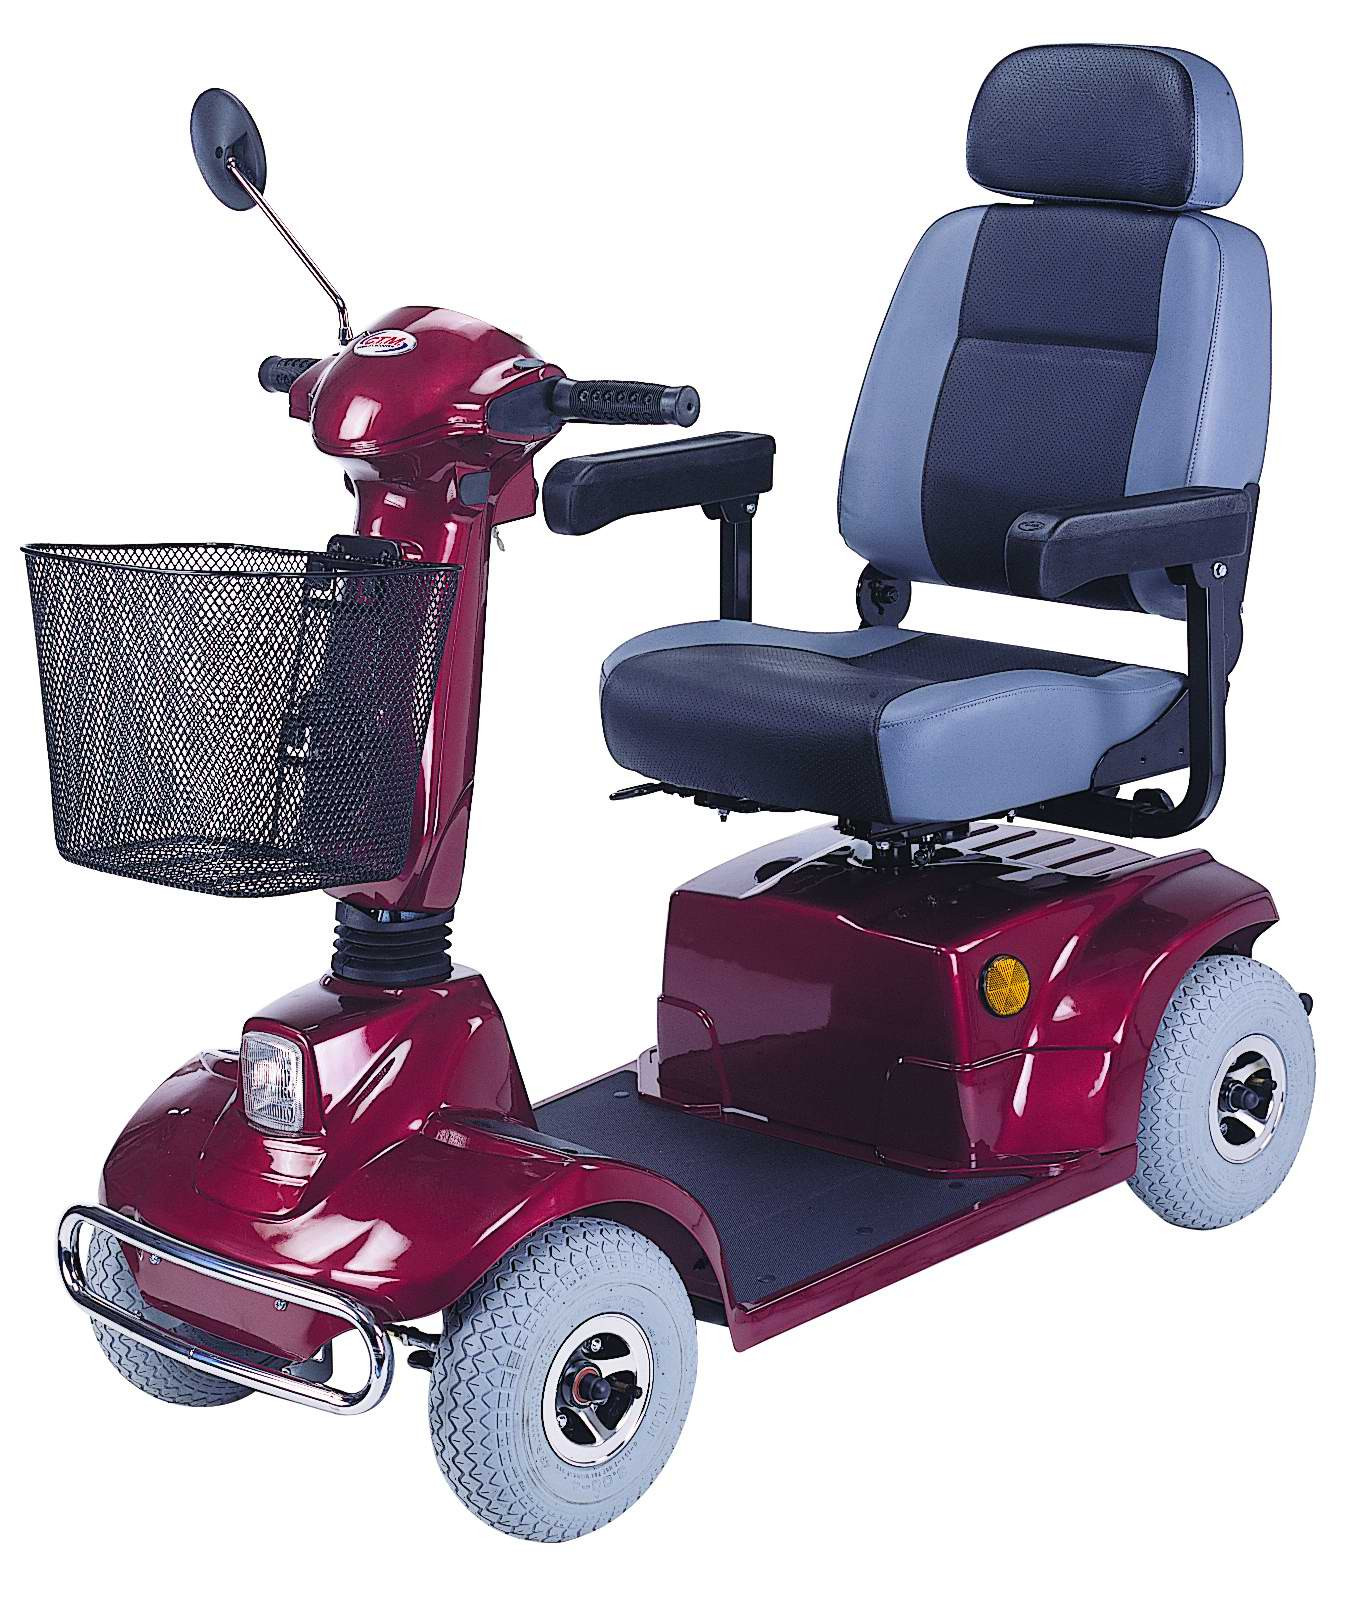 ctm hs 580 mobility scooter manual